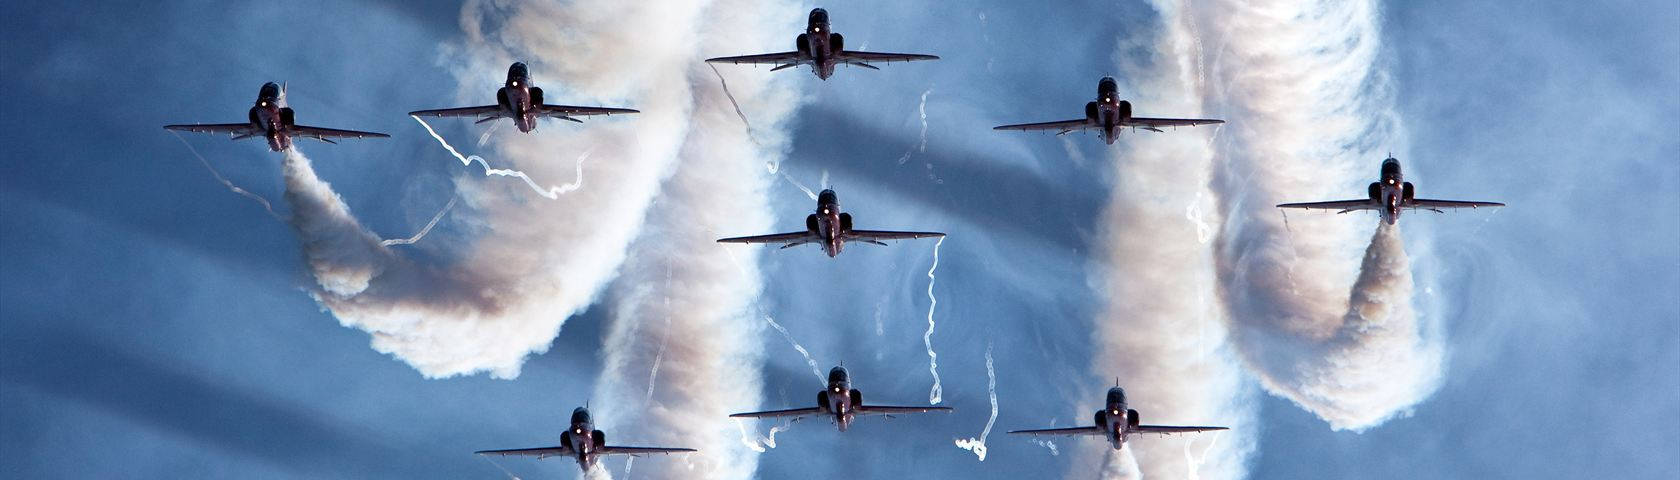 The UK Red Arrows